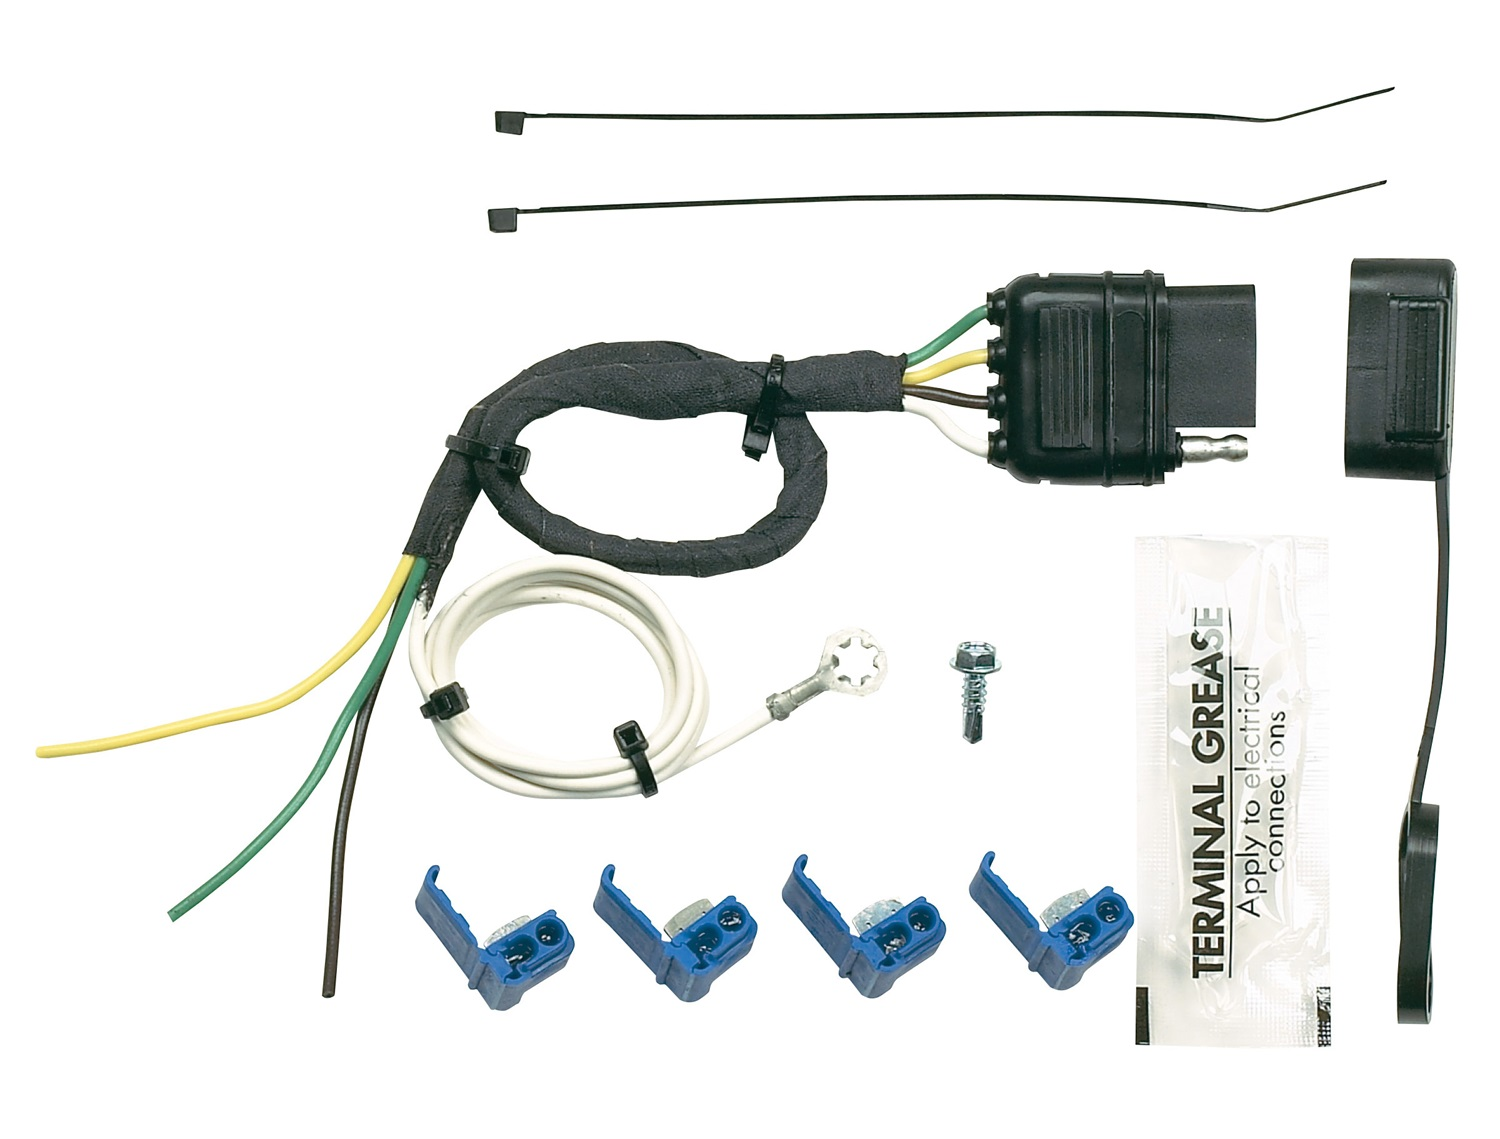 hopkins towing solution trailer wiring harness 41225. Black Bedroom Furniture Sets. Home Design Ideas